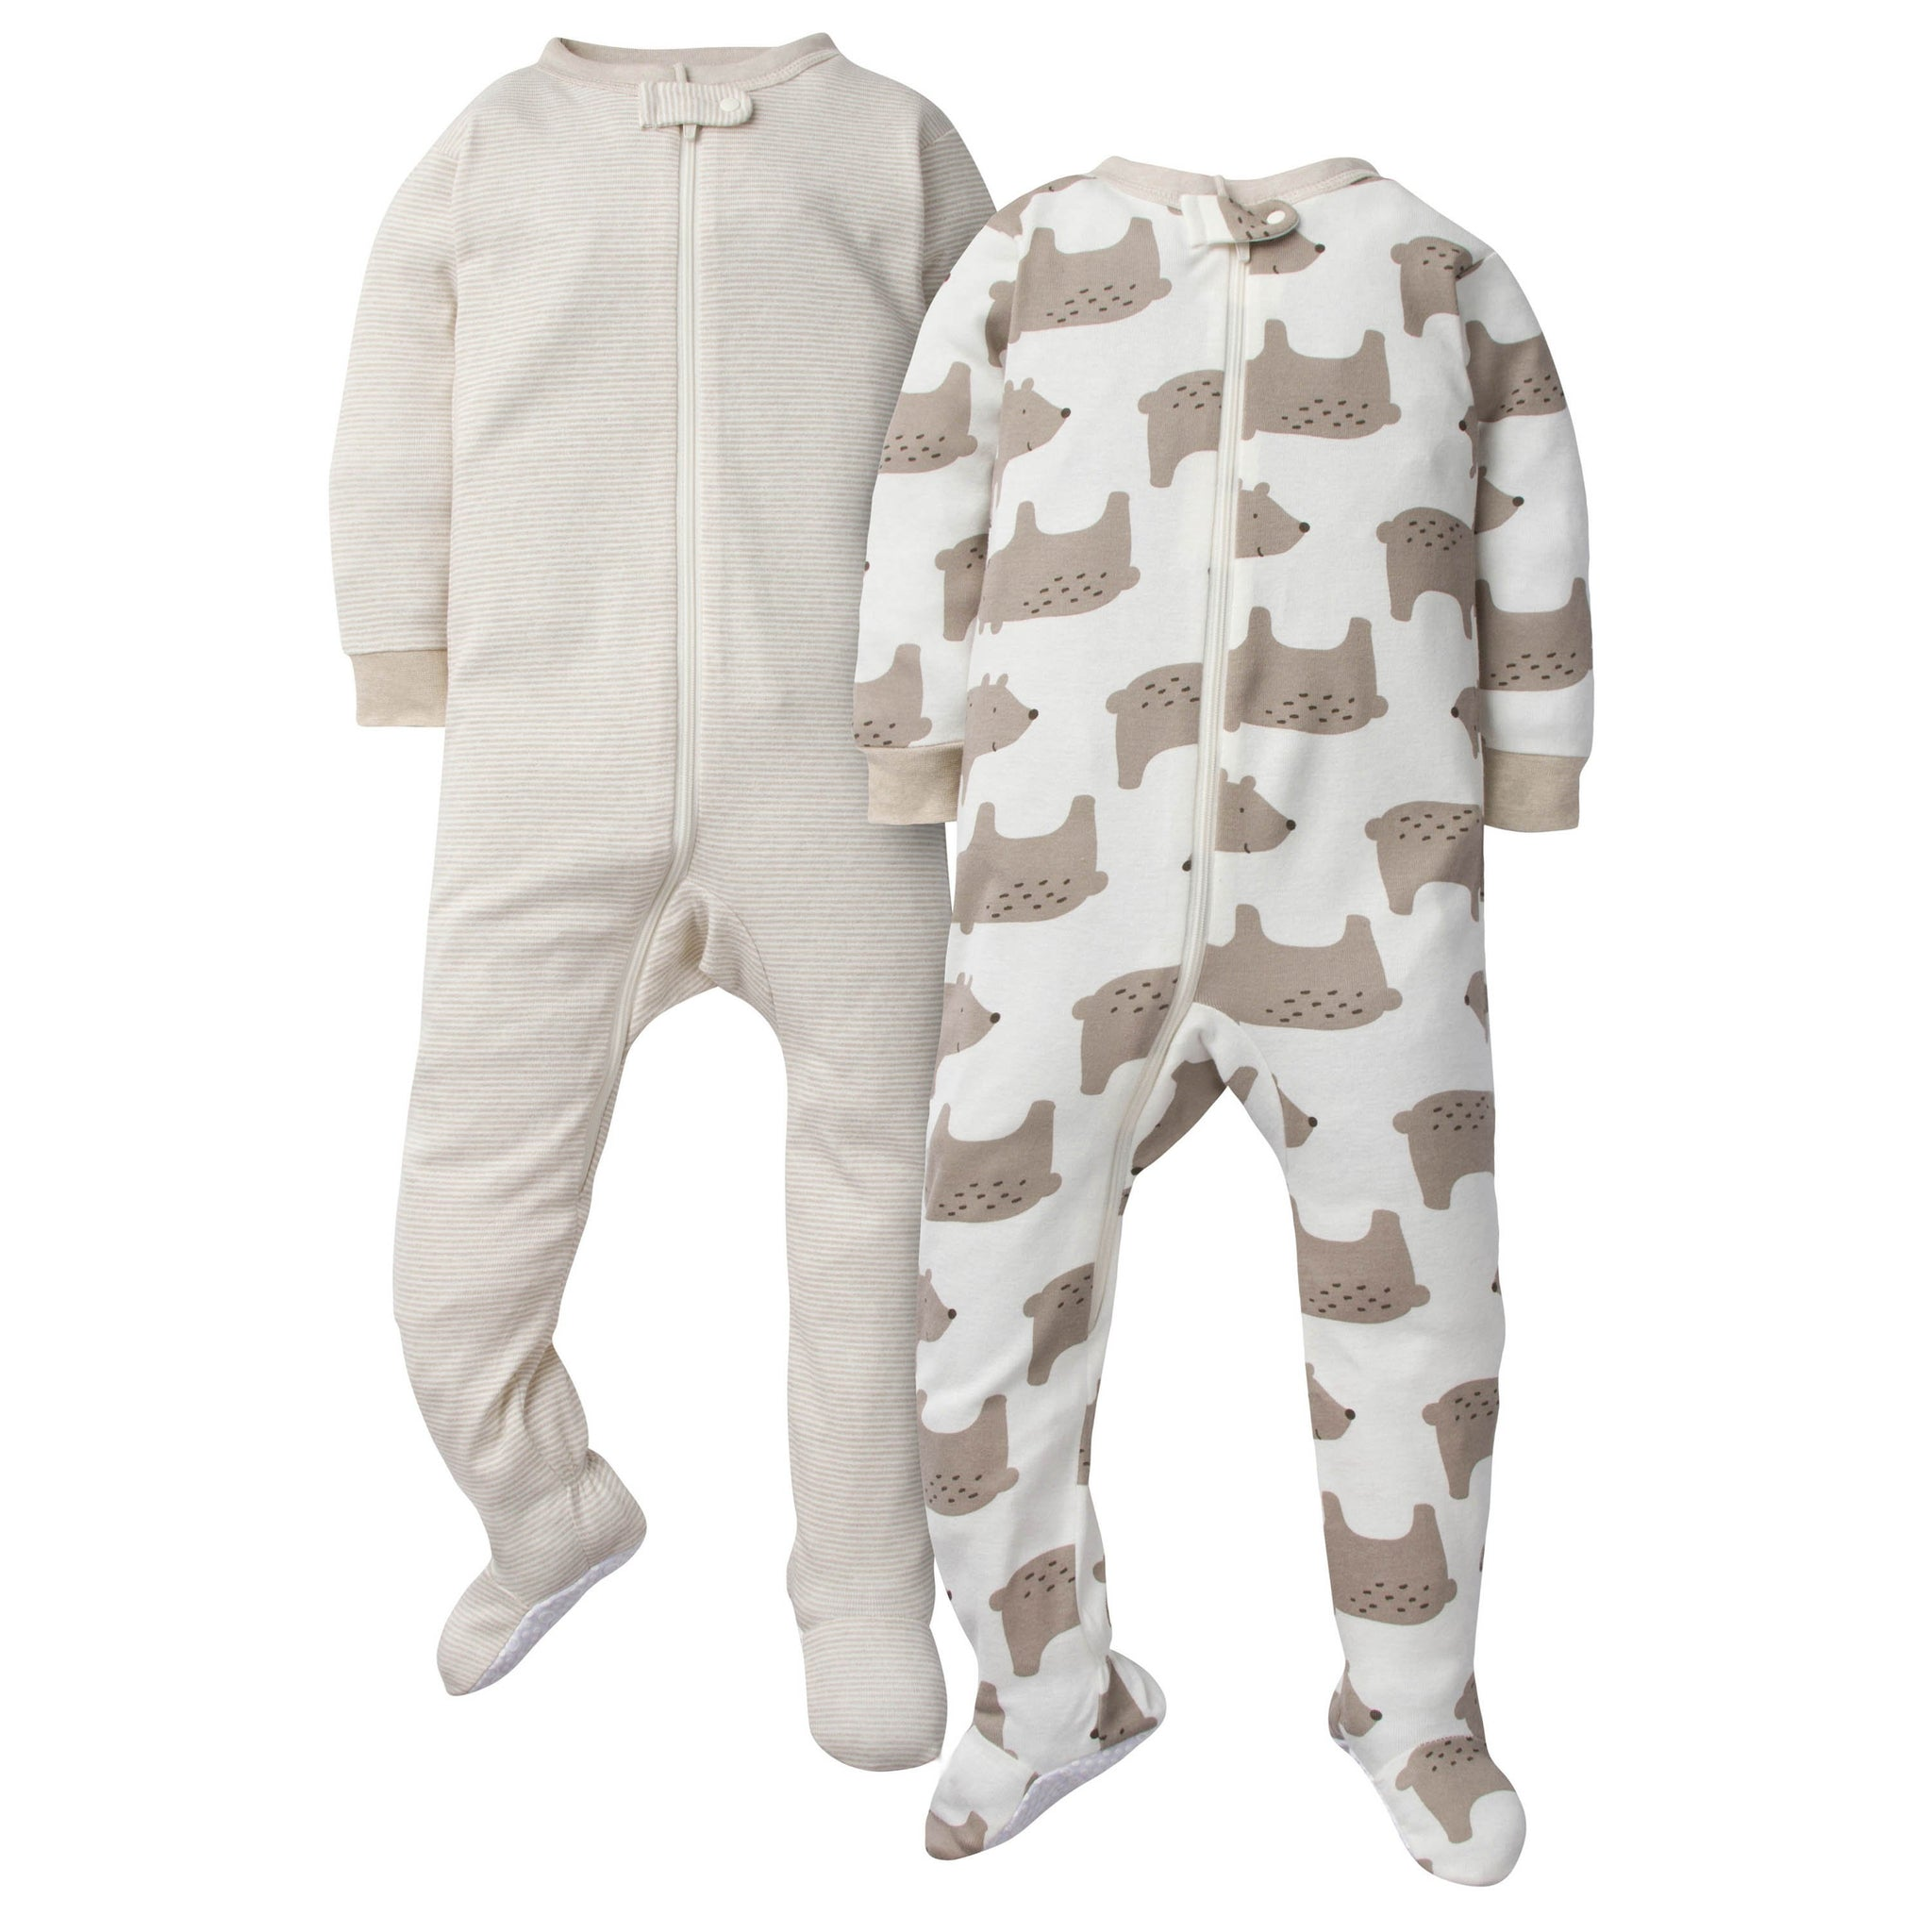 2-Pack Baby Boys Footed Union Suits - Bear